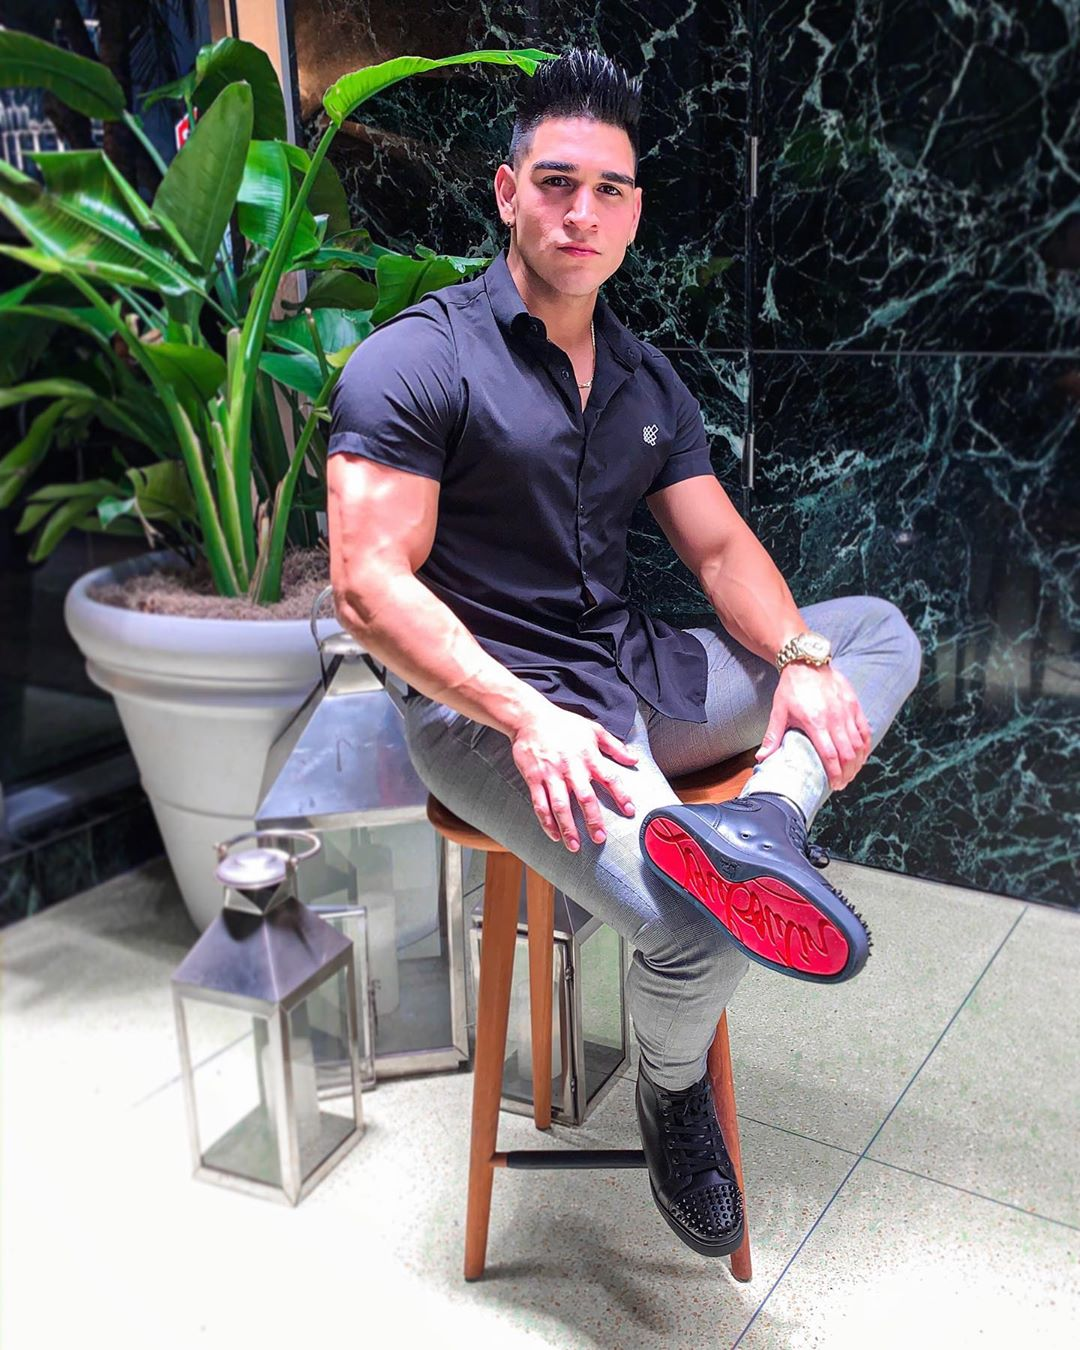 sexy-bad-boy-fit-muscle-dude-sitting-outside-getleman-look